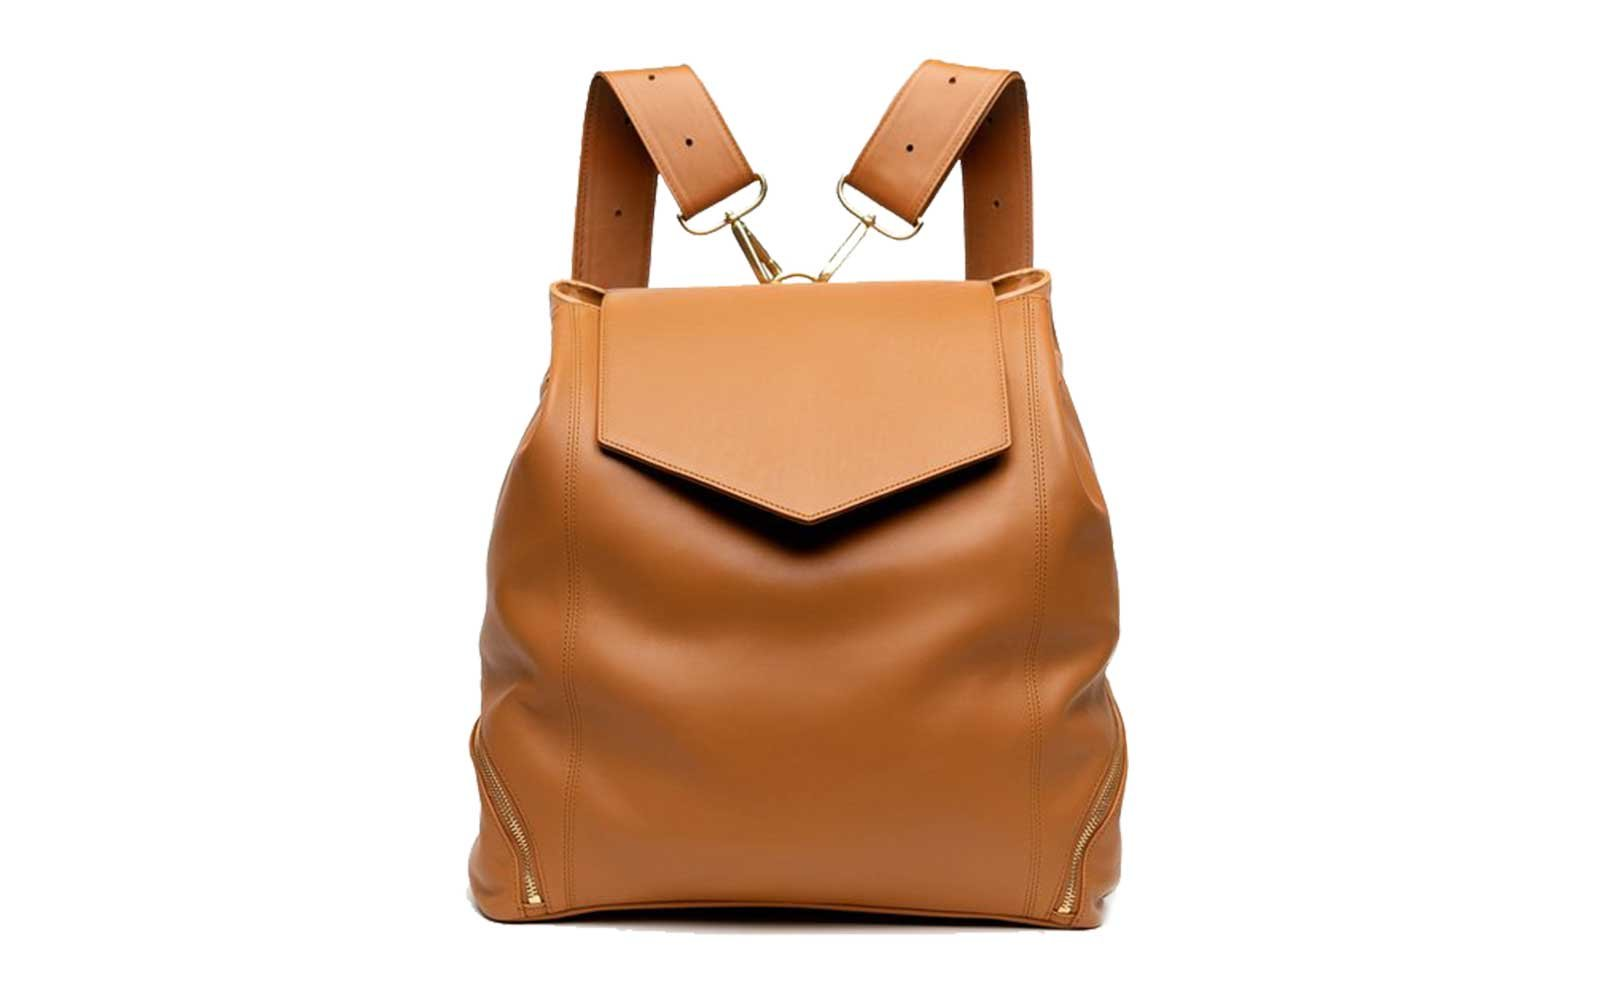 Leather convertible backpack purse from Holly and Tanager